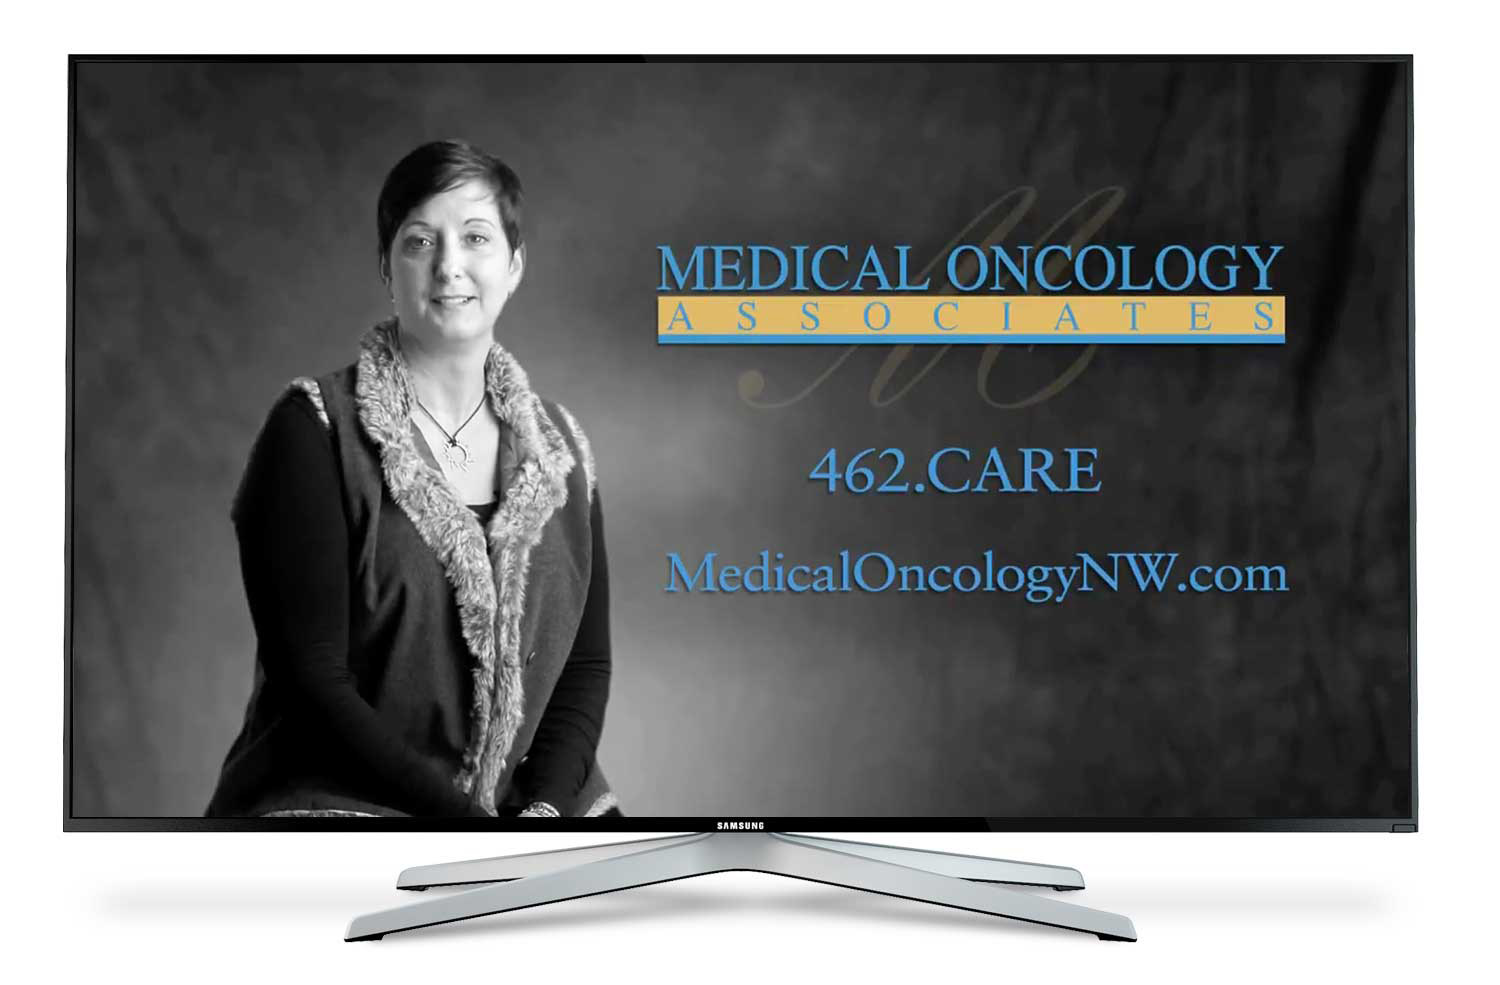 Medical Oncology Associates